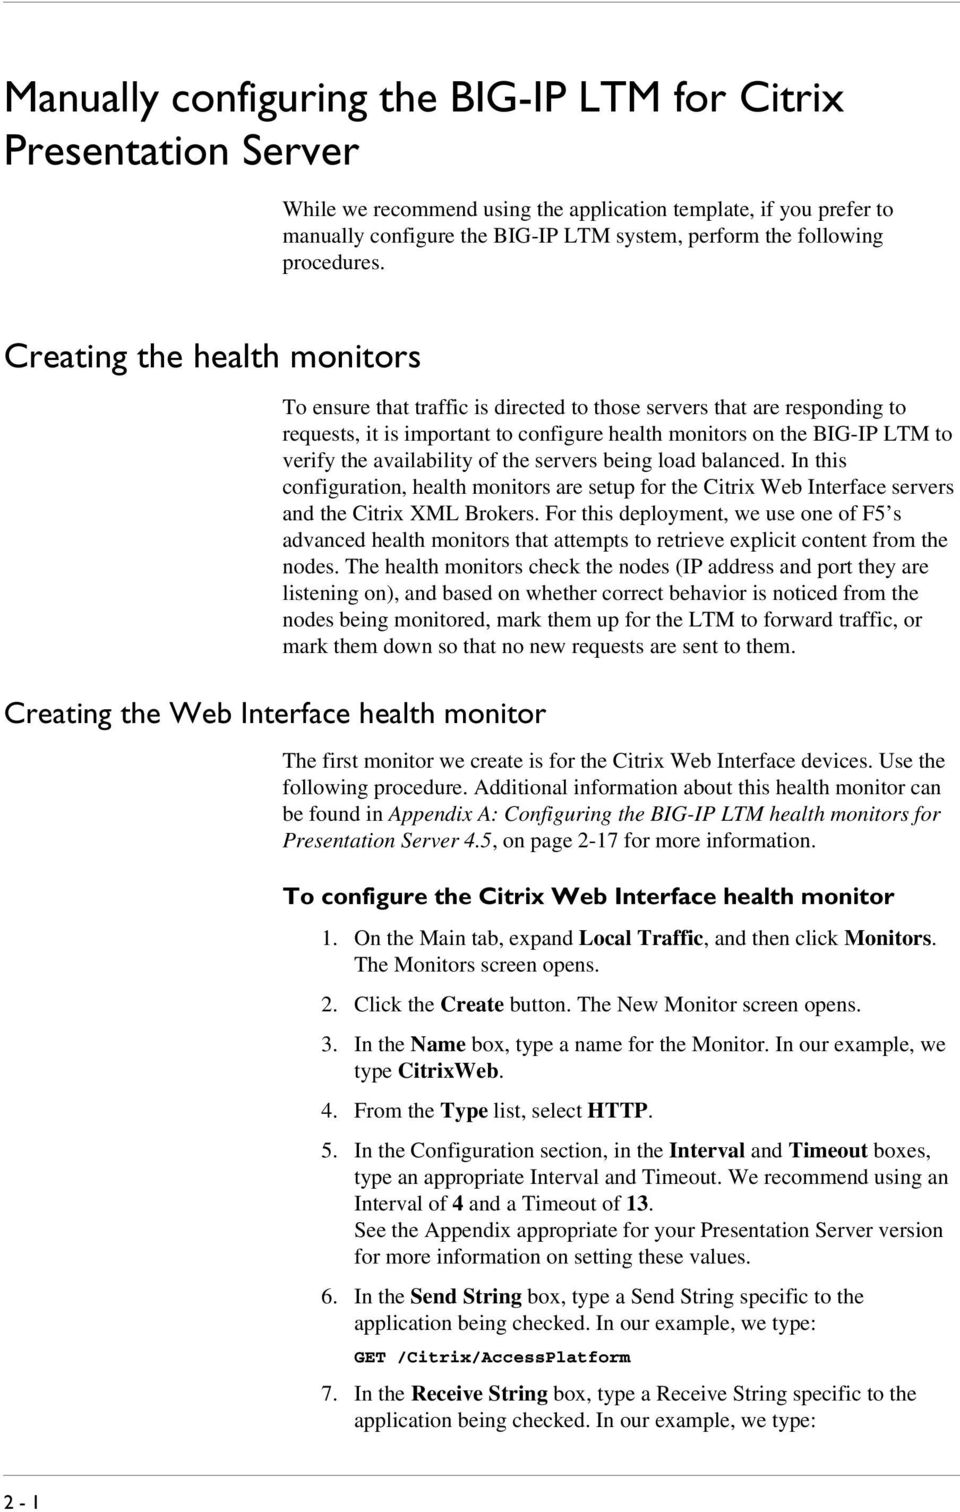 Creating the health monitors Creating the Web Interface health monitor To ensure that traffic is directed to those servers that are responding to requests, it is important to configure health